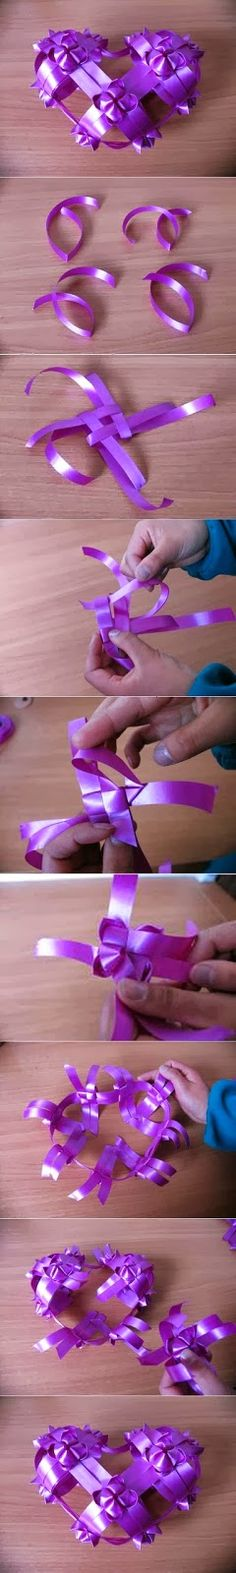 My DIY Projects: Diy Ribbon Heart Ornament